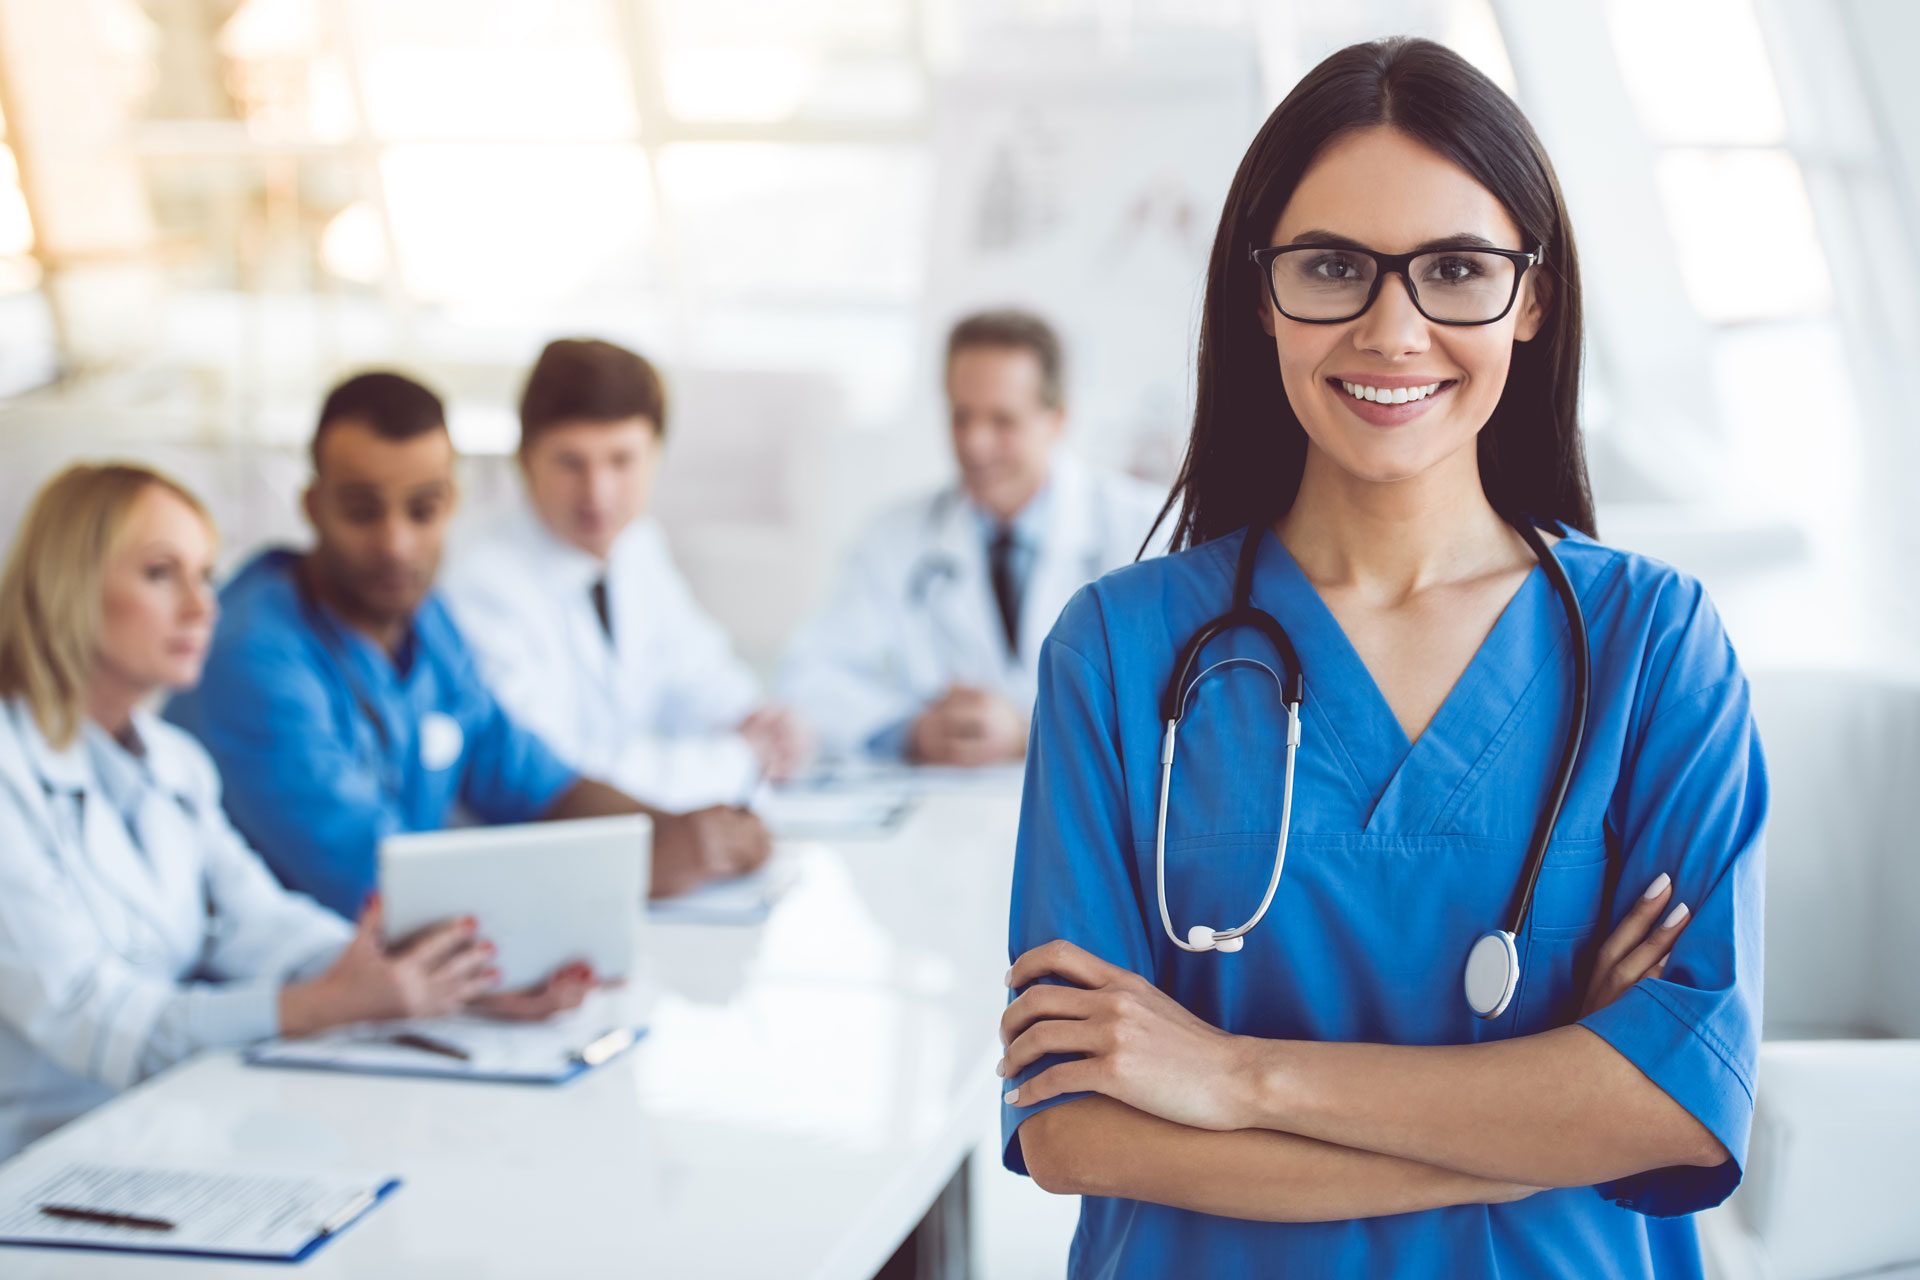 Patient Volume & Staffing: How to Know When You Should Increase Providers